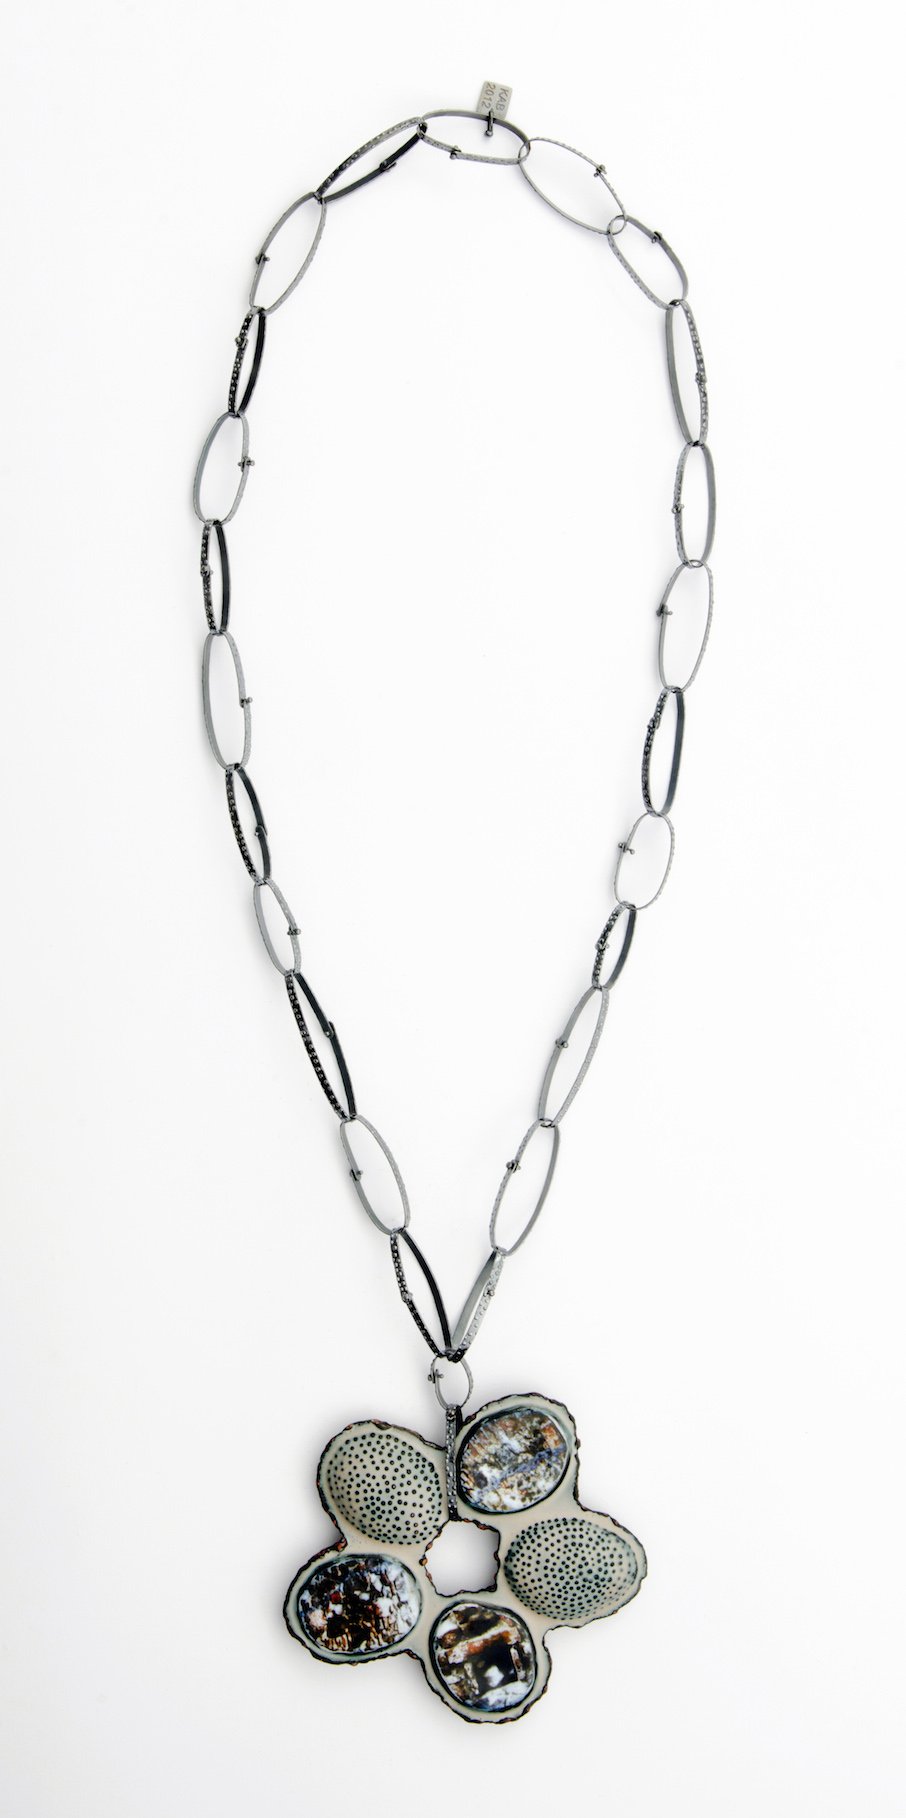 Kathleen Browne, Repair, necklace